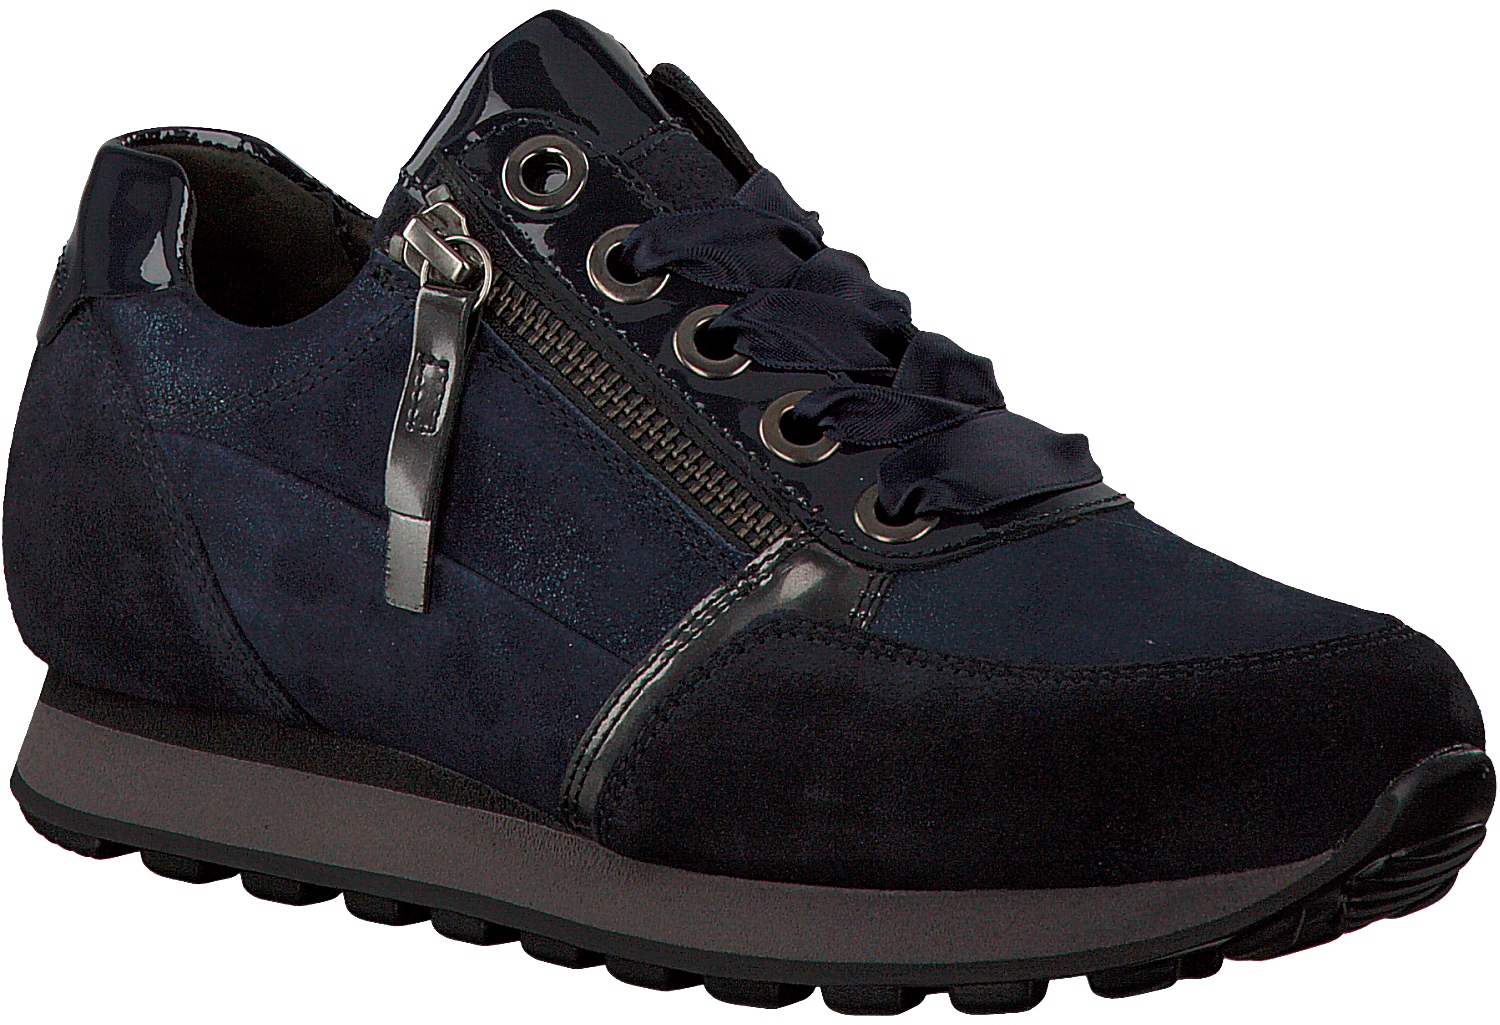 d16ef0a1a17 Blauwe GABOR Sneakers 335. GABOR. -30%. Previous